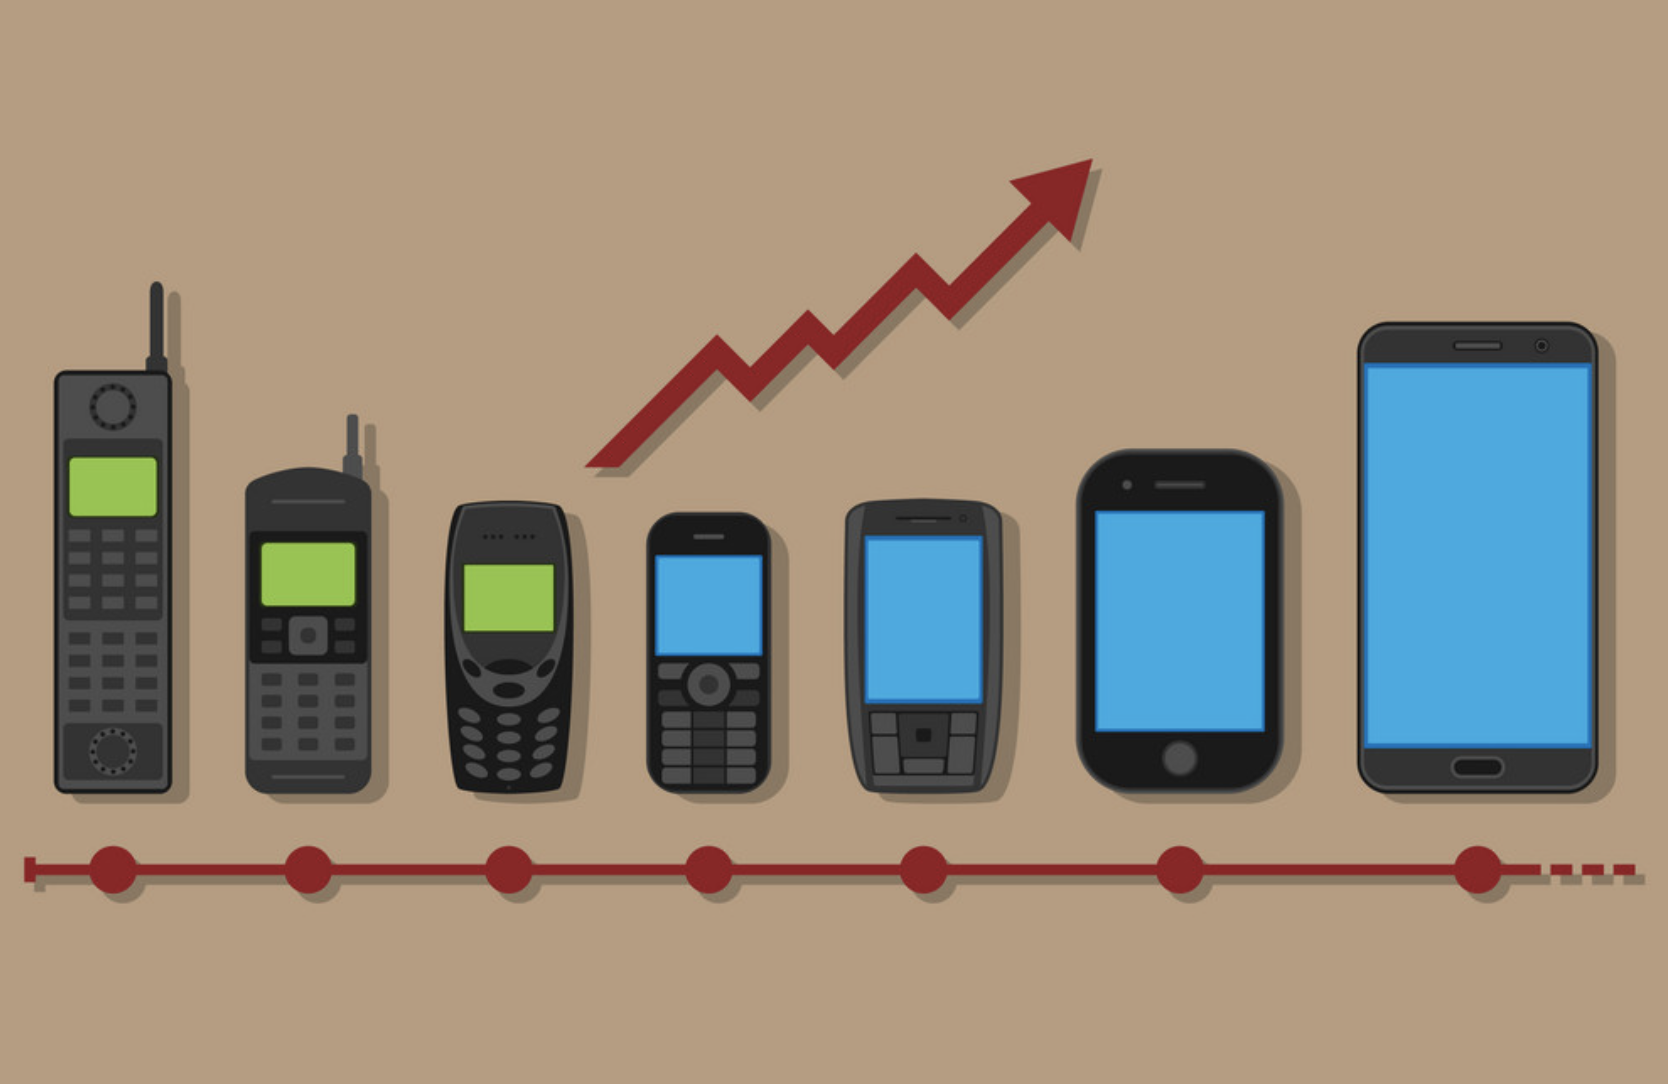 Comparing the First Mobile Phone to Today's Smartphone